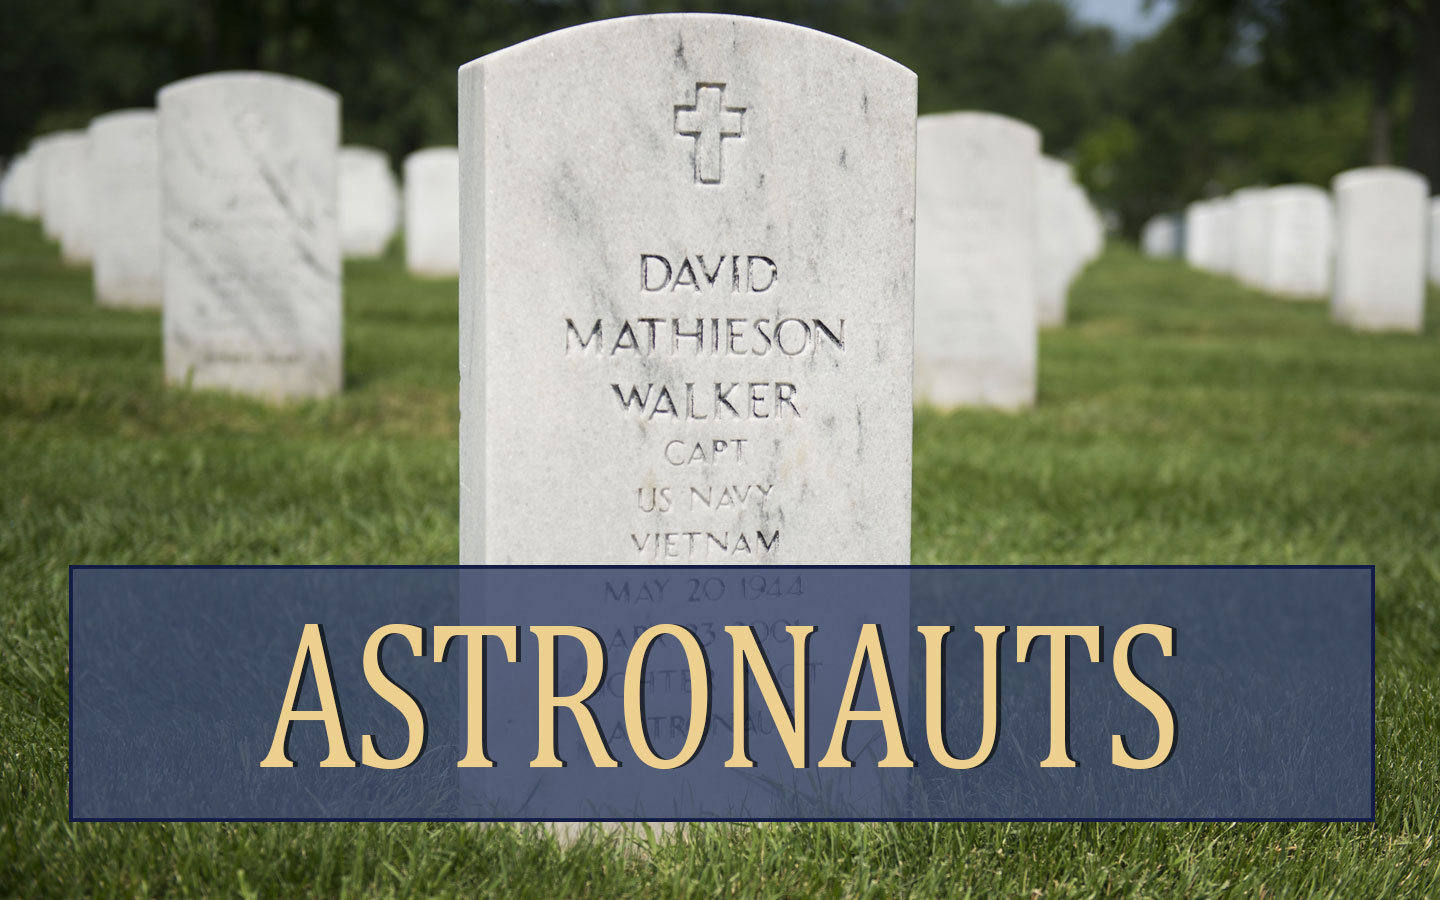 Astronauts at Arlington National Cemetery